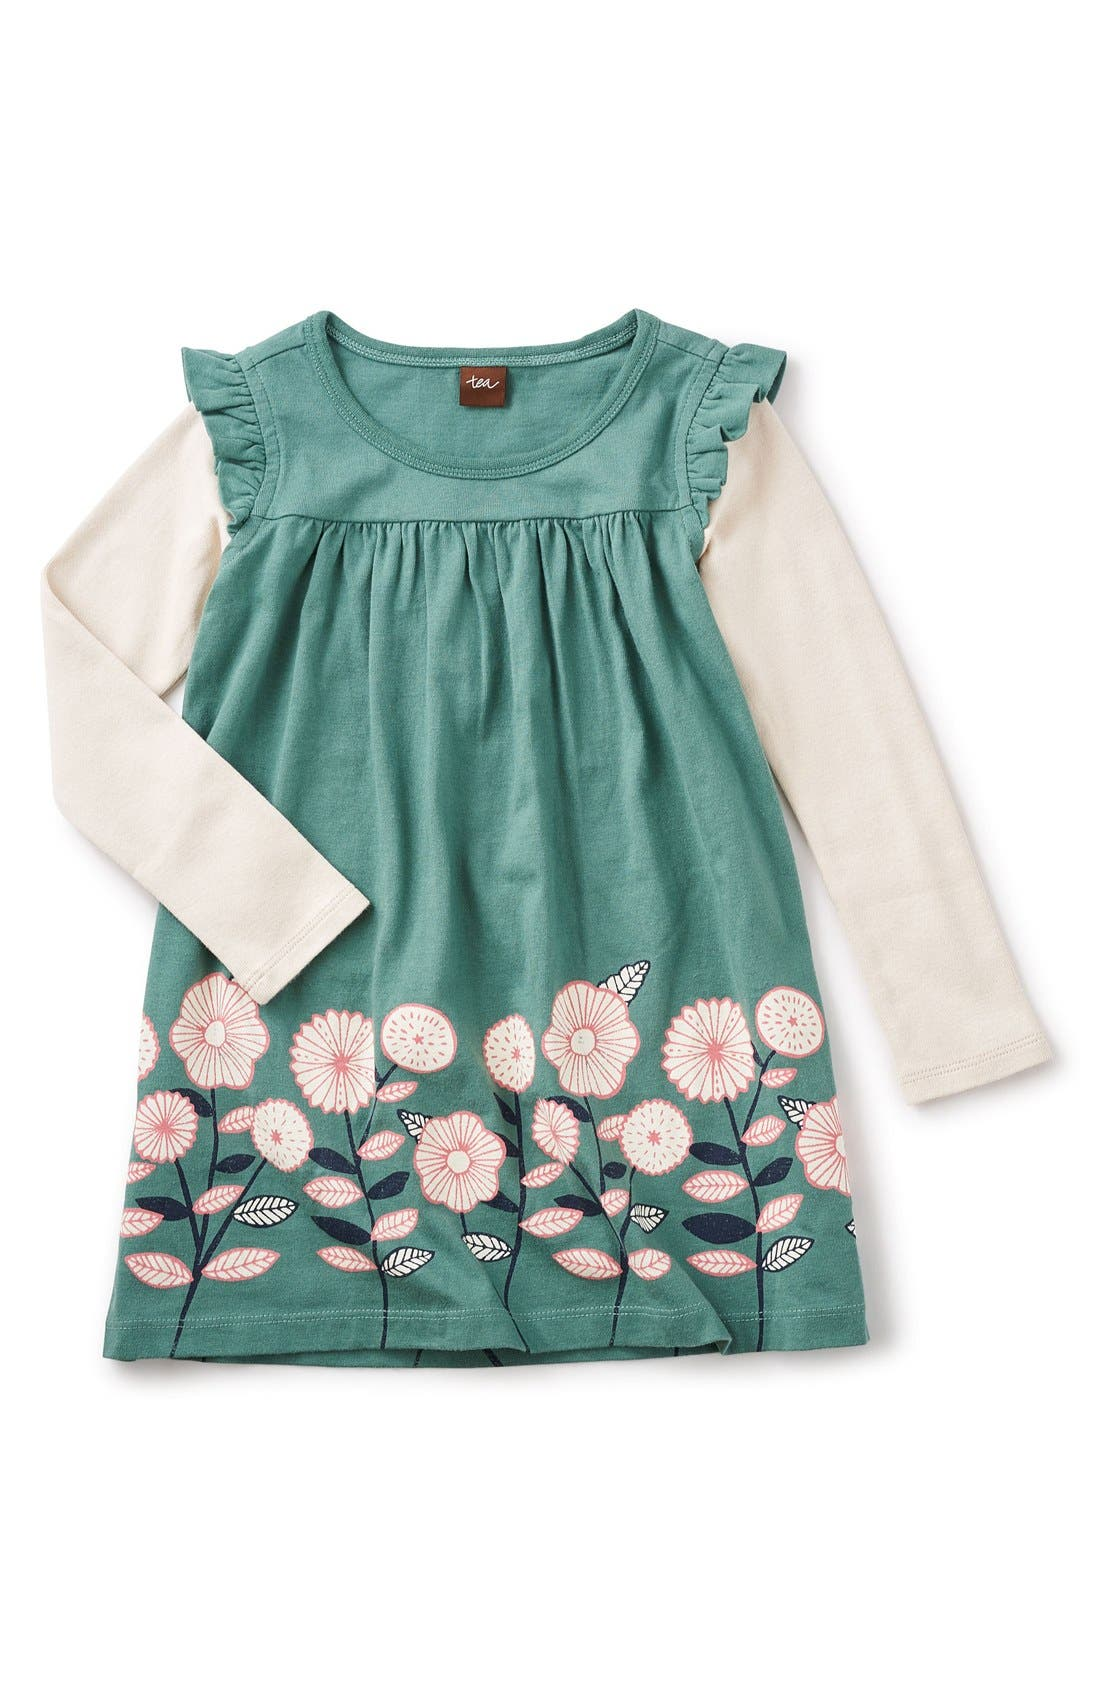 Alternate Image 1 Selected - Tea Collection 'Midori - Double Decker' Layered Dress (Toddler Girls, Little Girls & Big Girls)